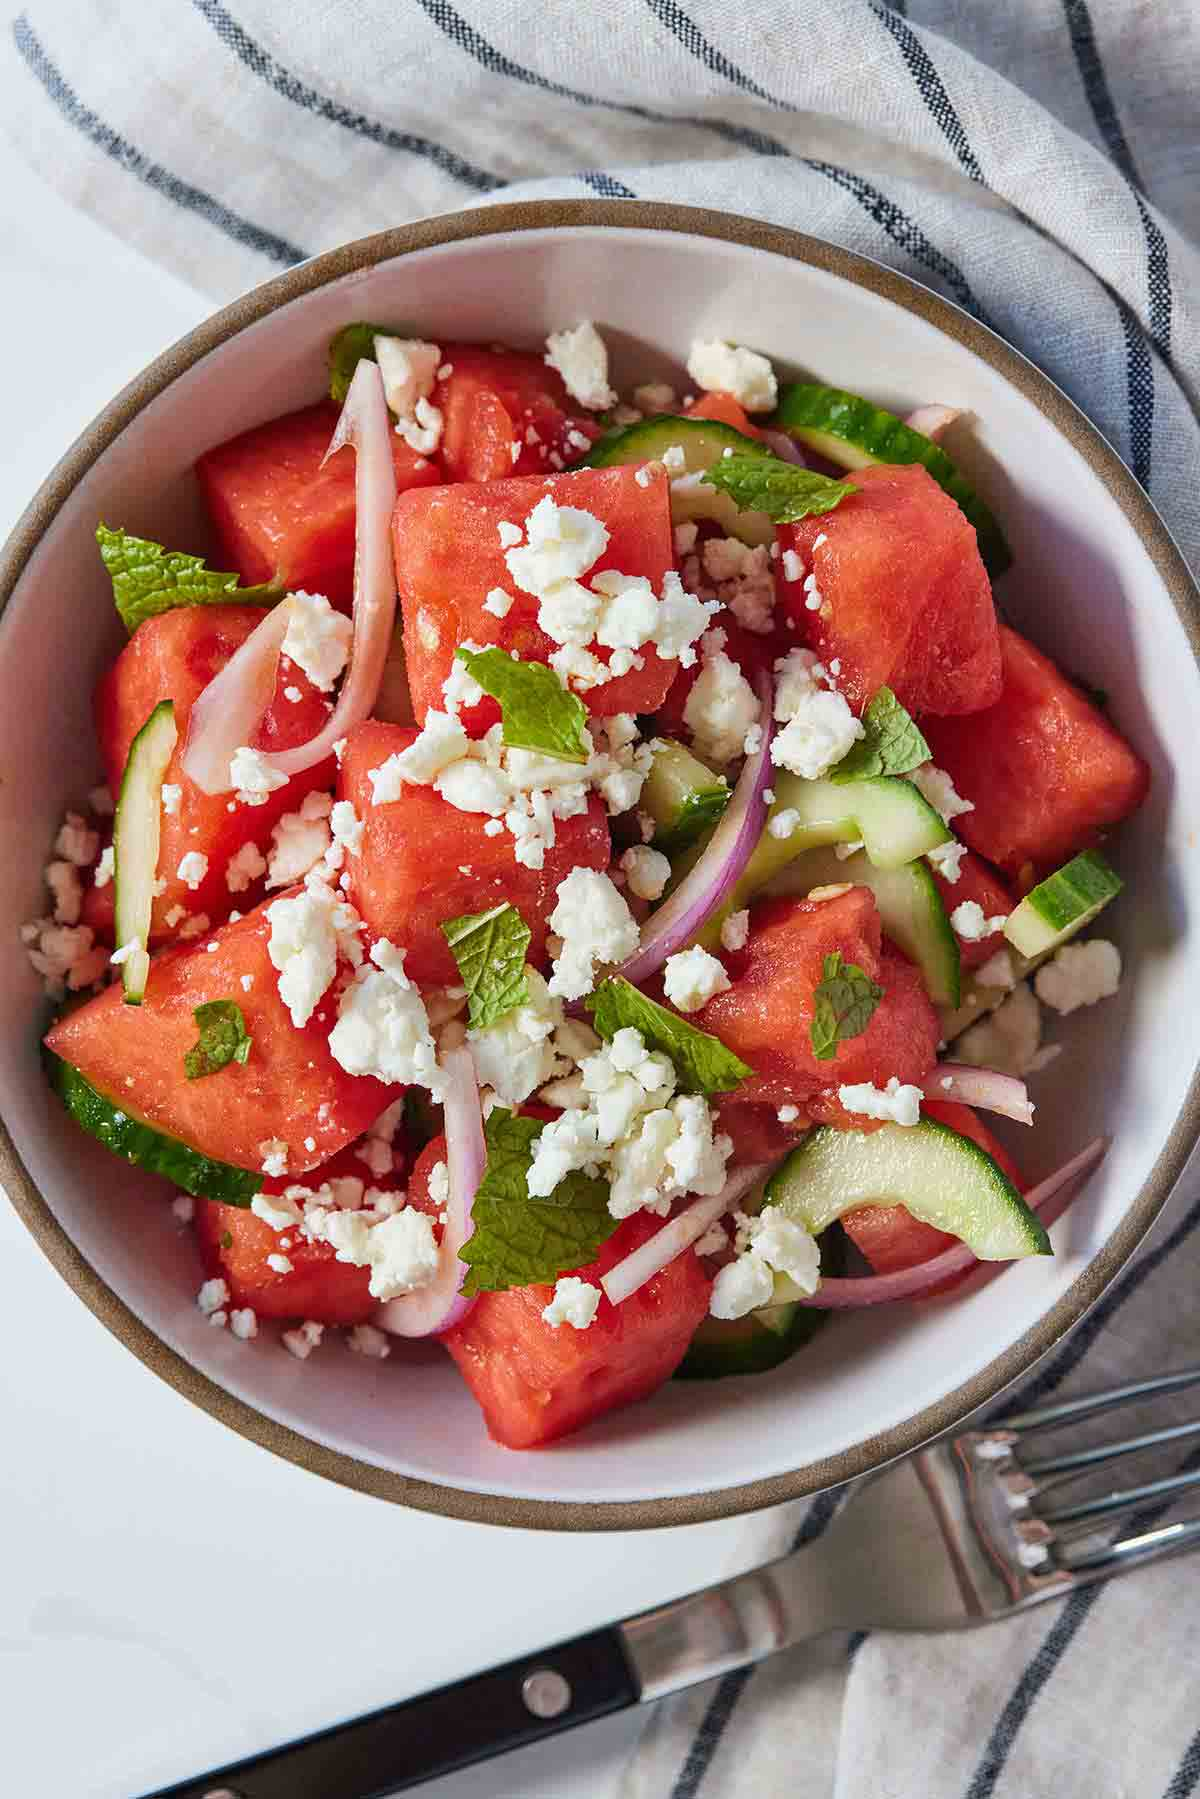 Overhead view of a bowl of watermelon salad with torn mint leaves and feta on top with a fork on the side.